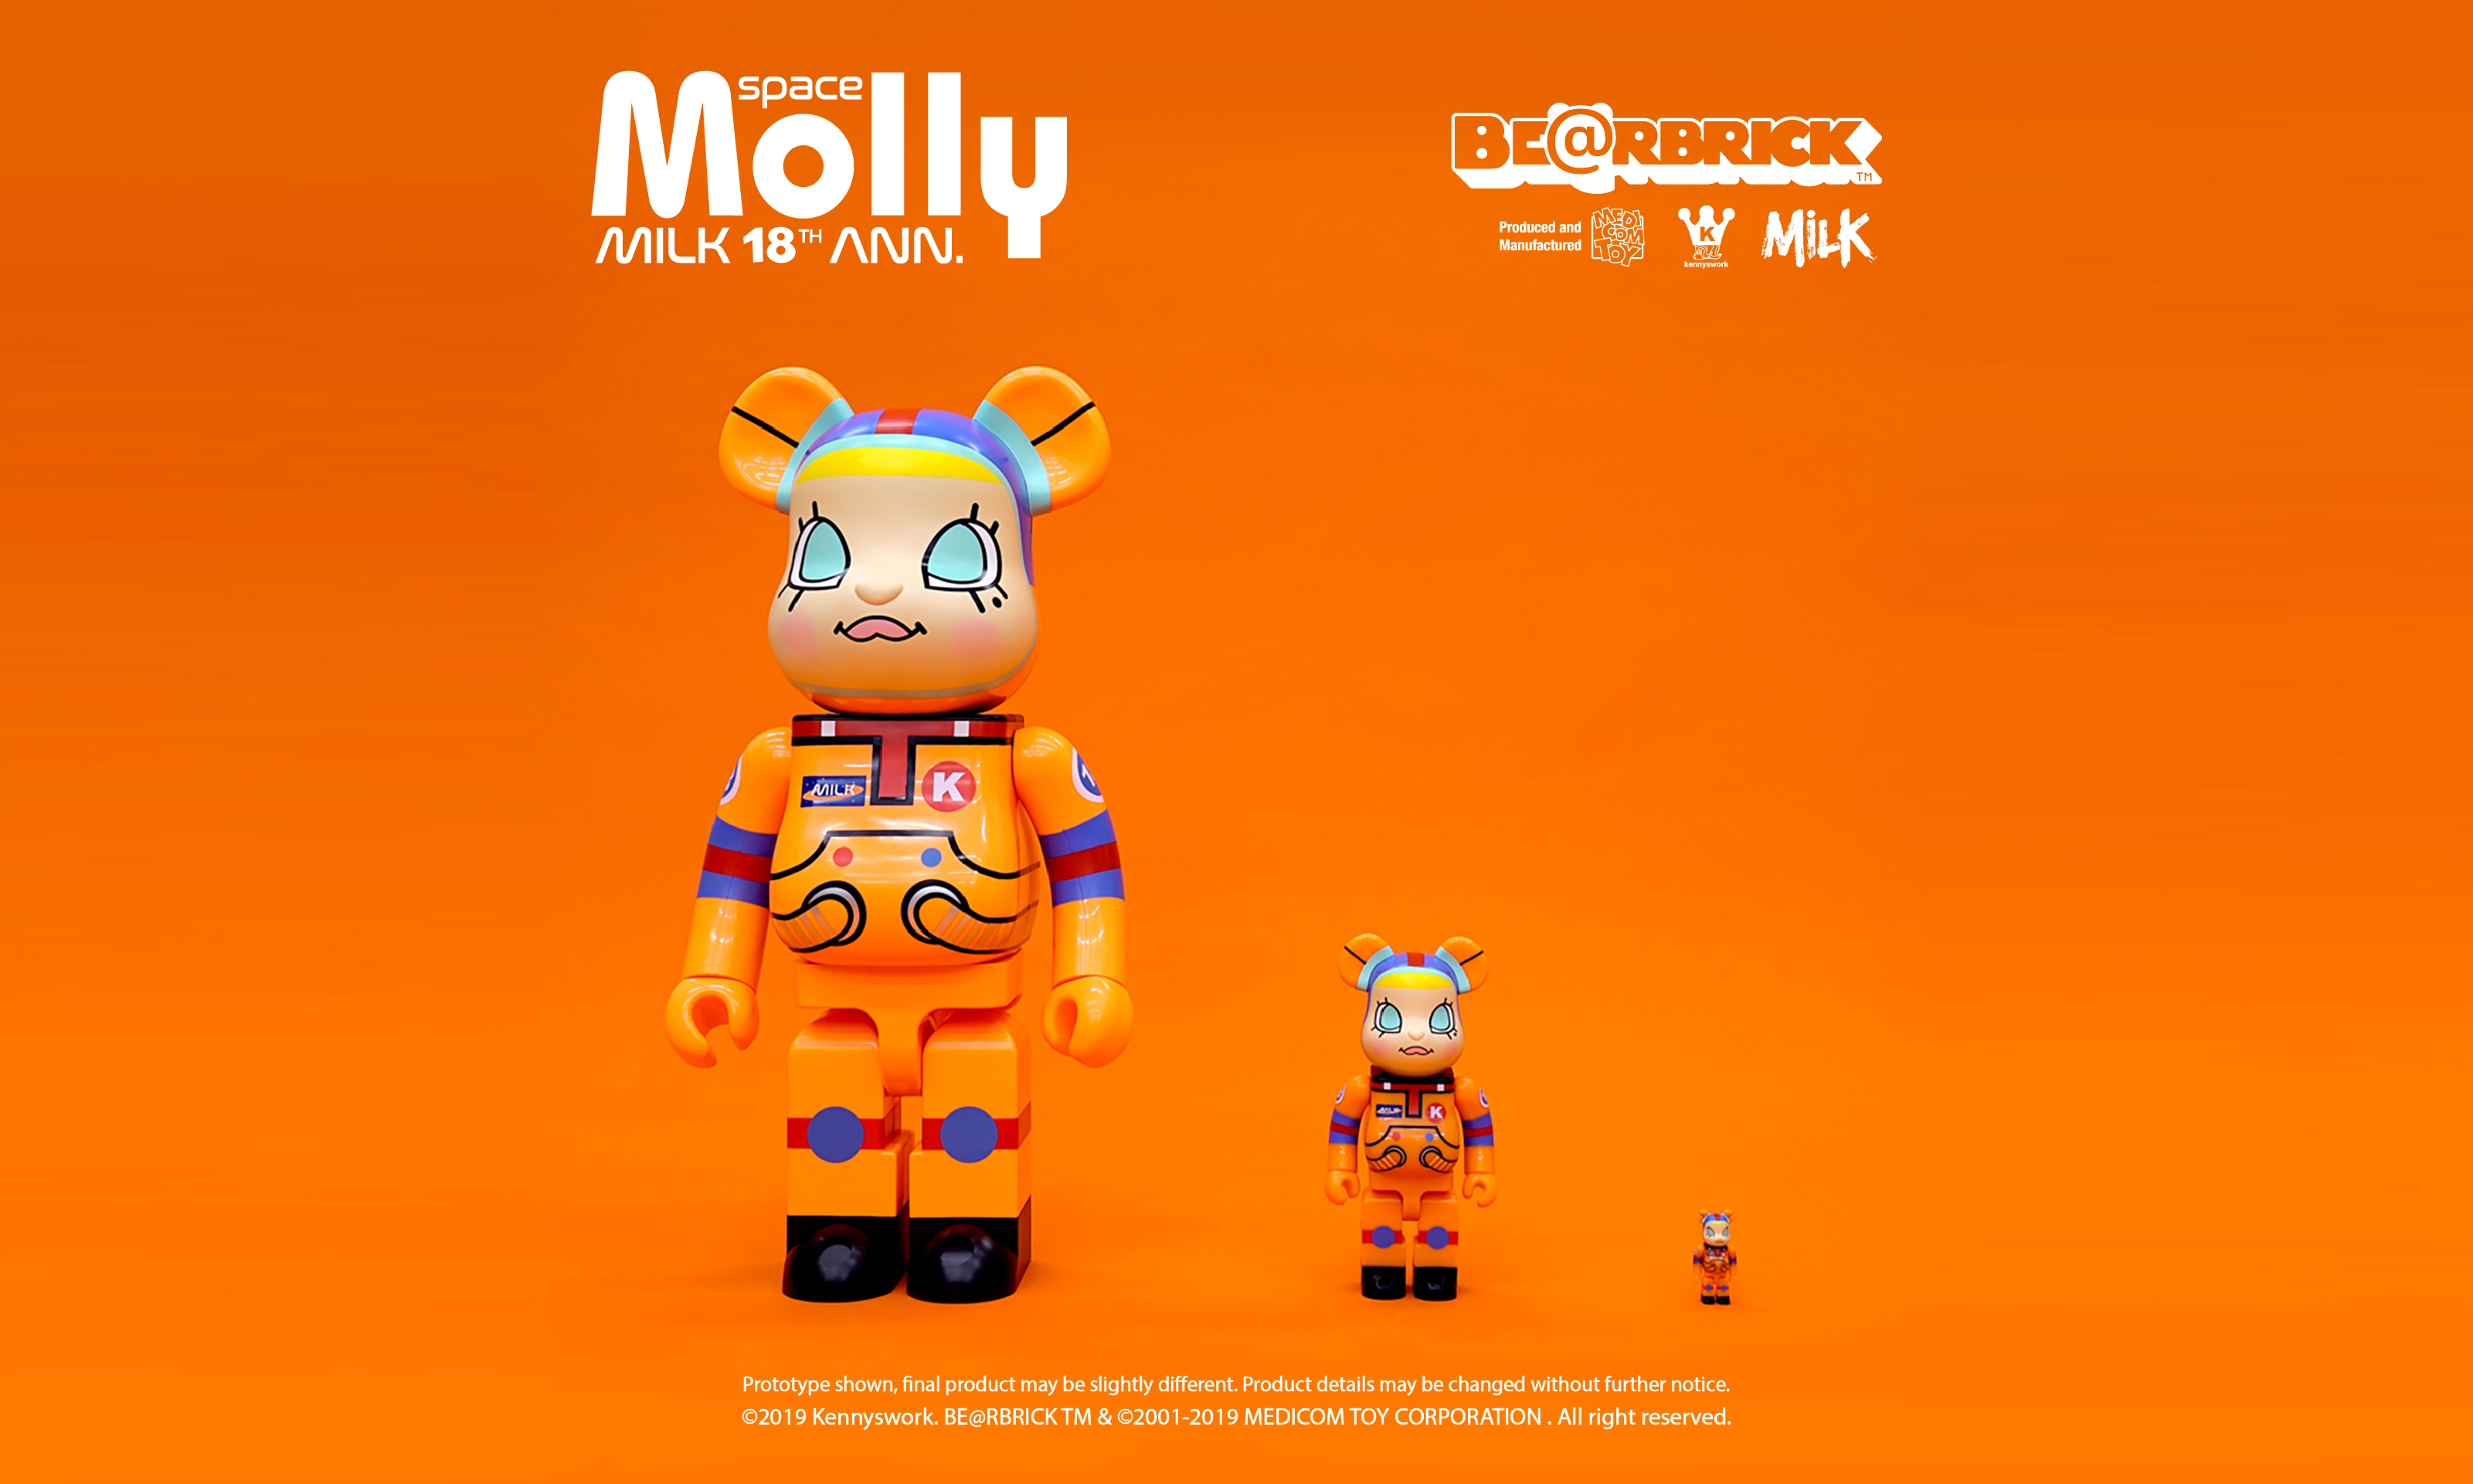 创刊 18 周年,《MILK》携手 Kenny Wong 打造 1000% Molly BE@RBRICK